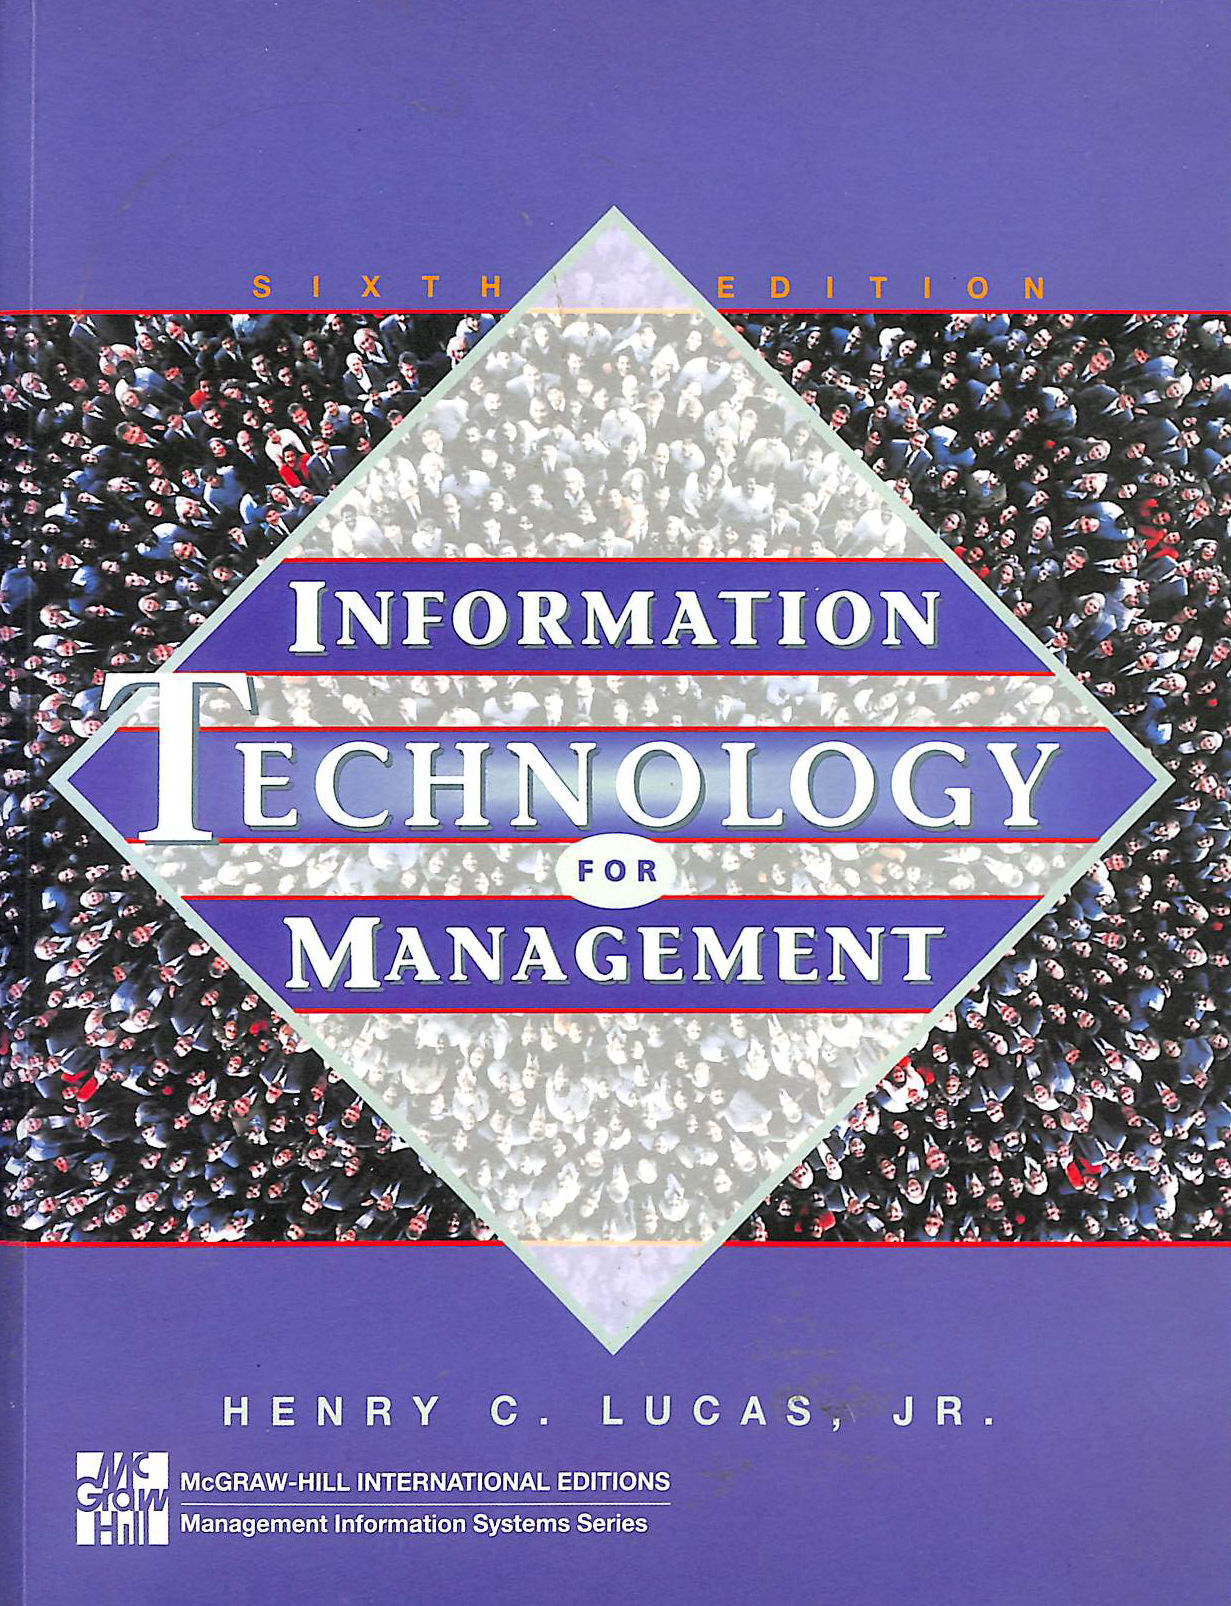 Image for Information Technology for Management (McGraw-Hill International Editions Series)